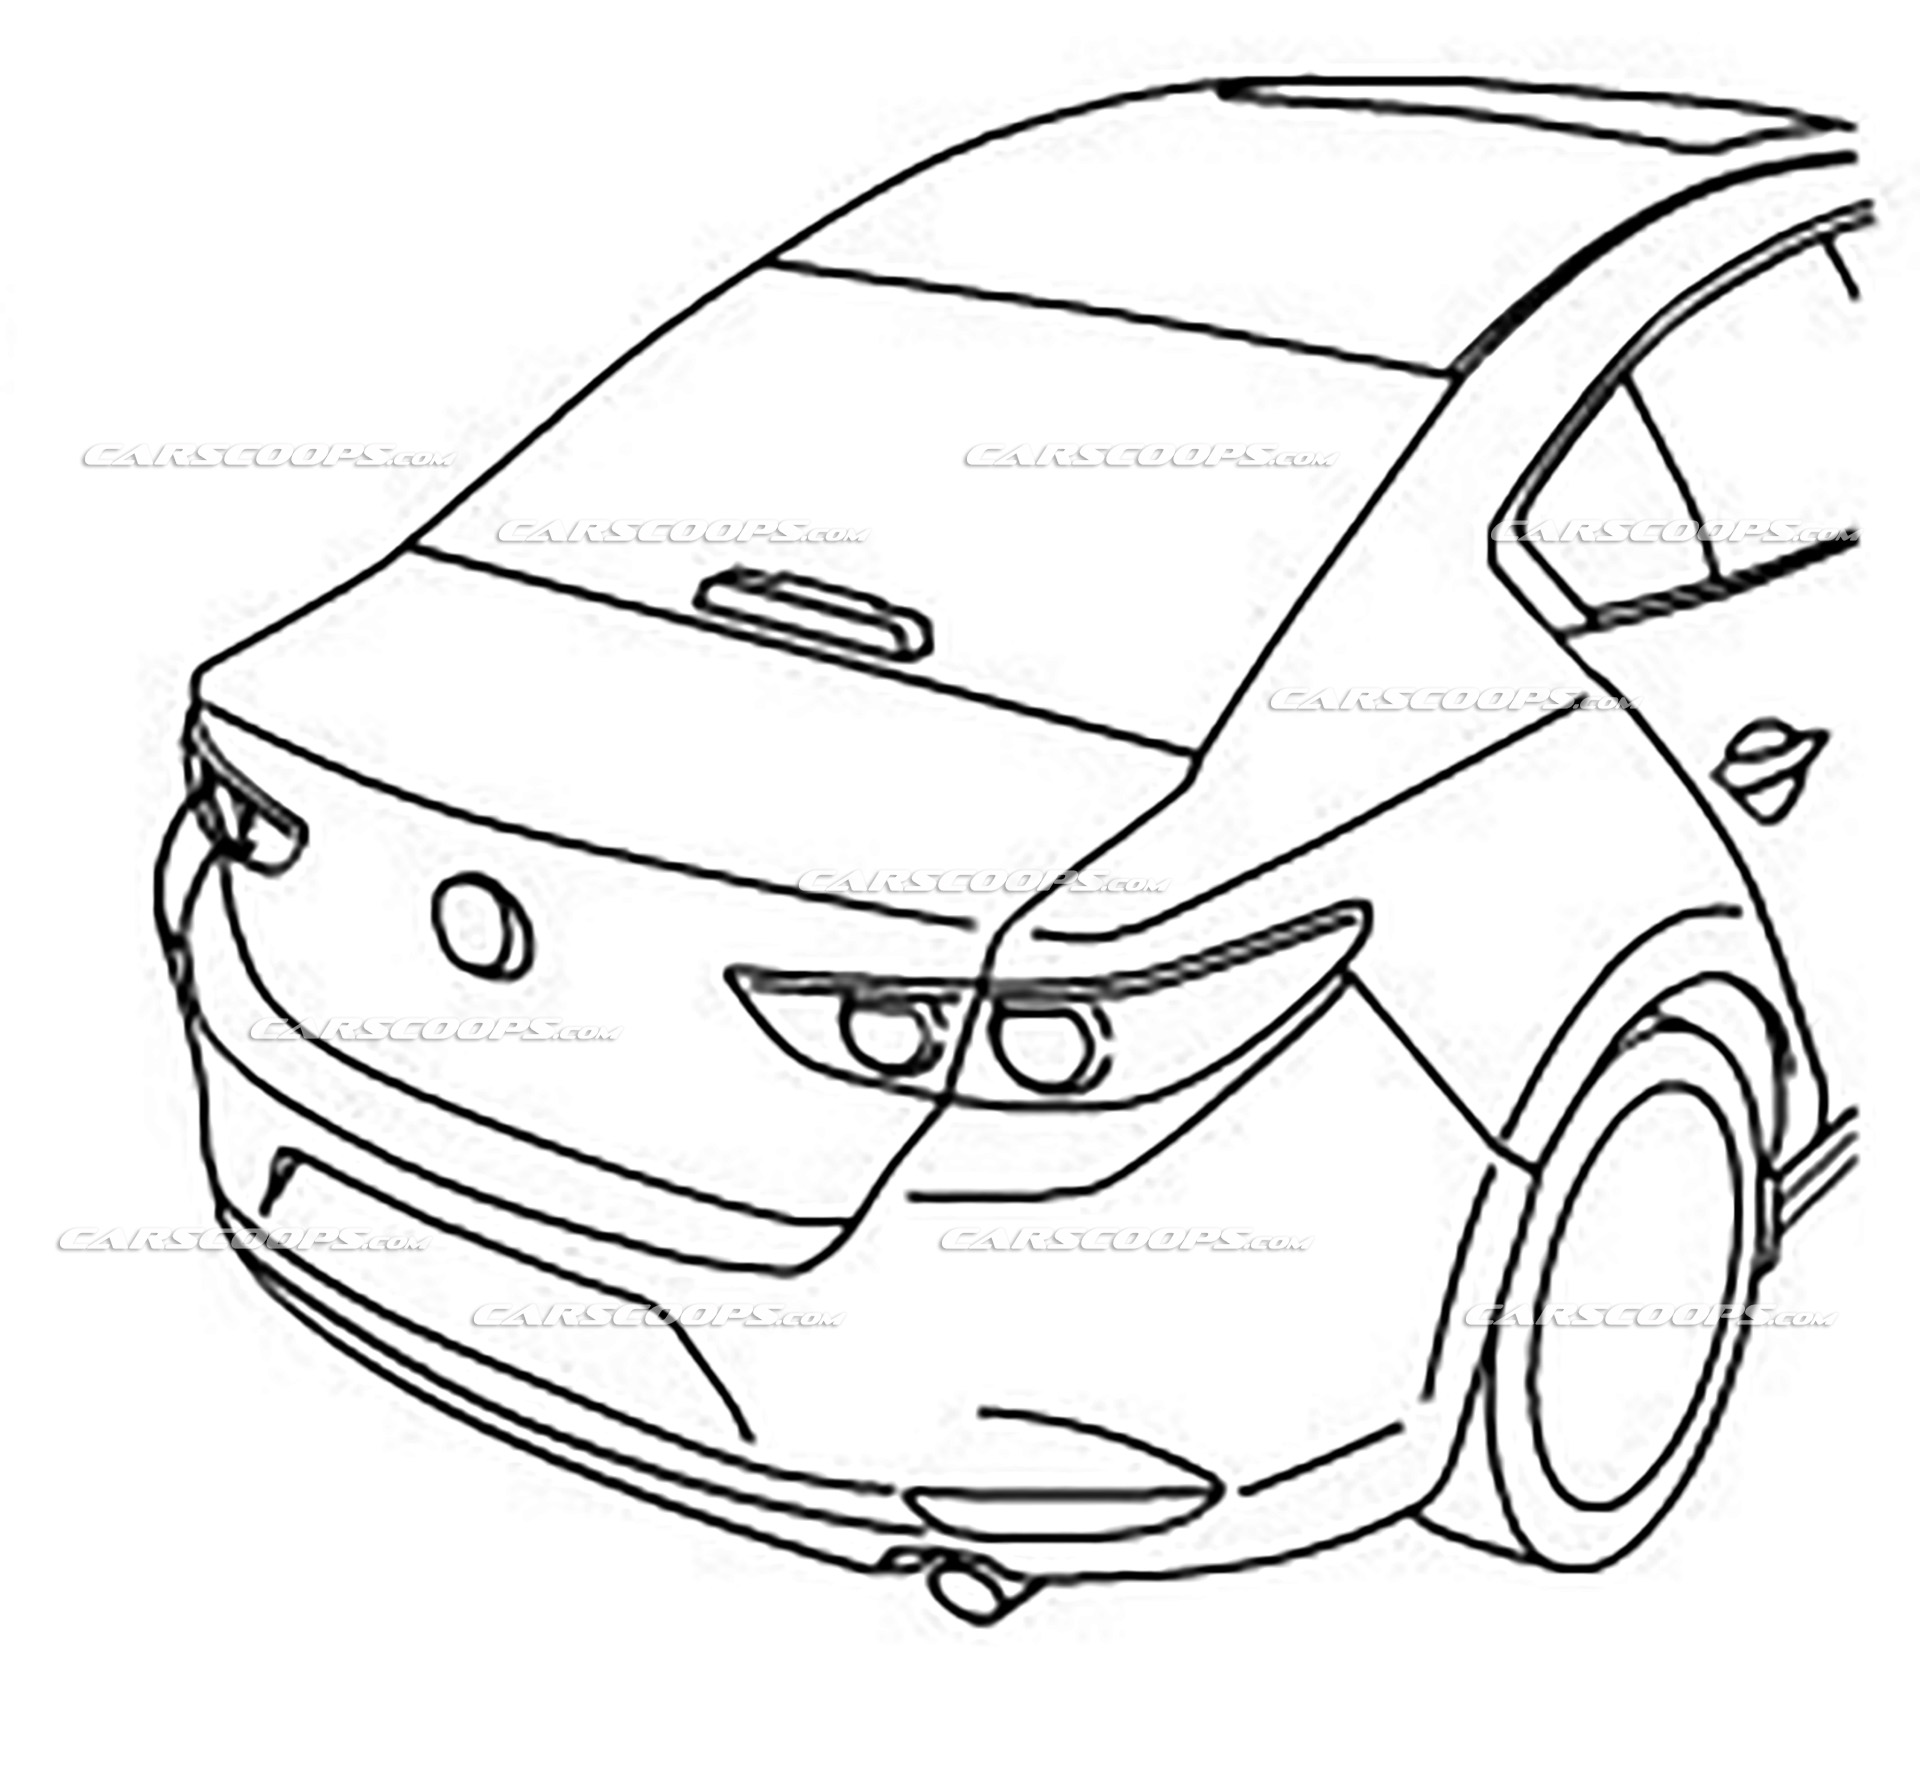 Mazda3 Here S An Early Look At The Production Model